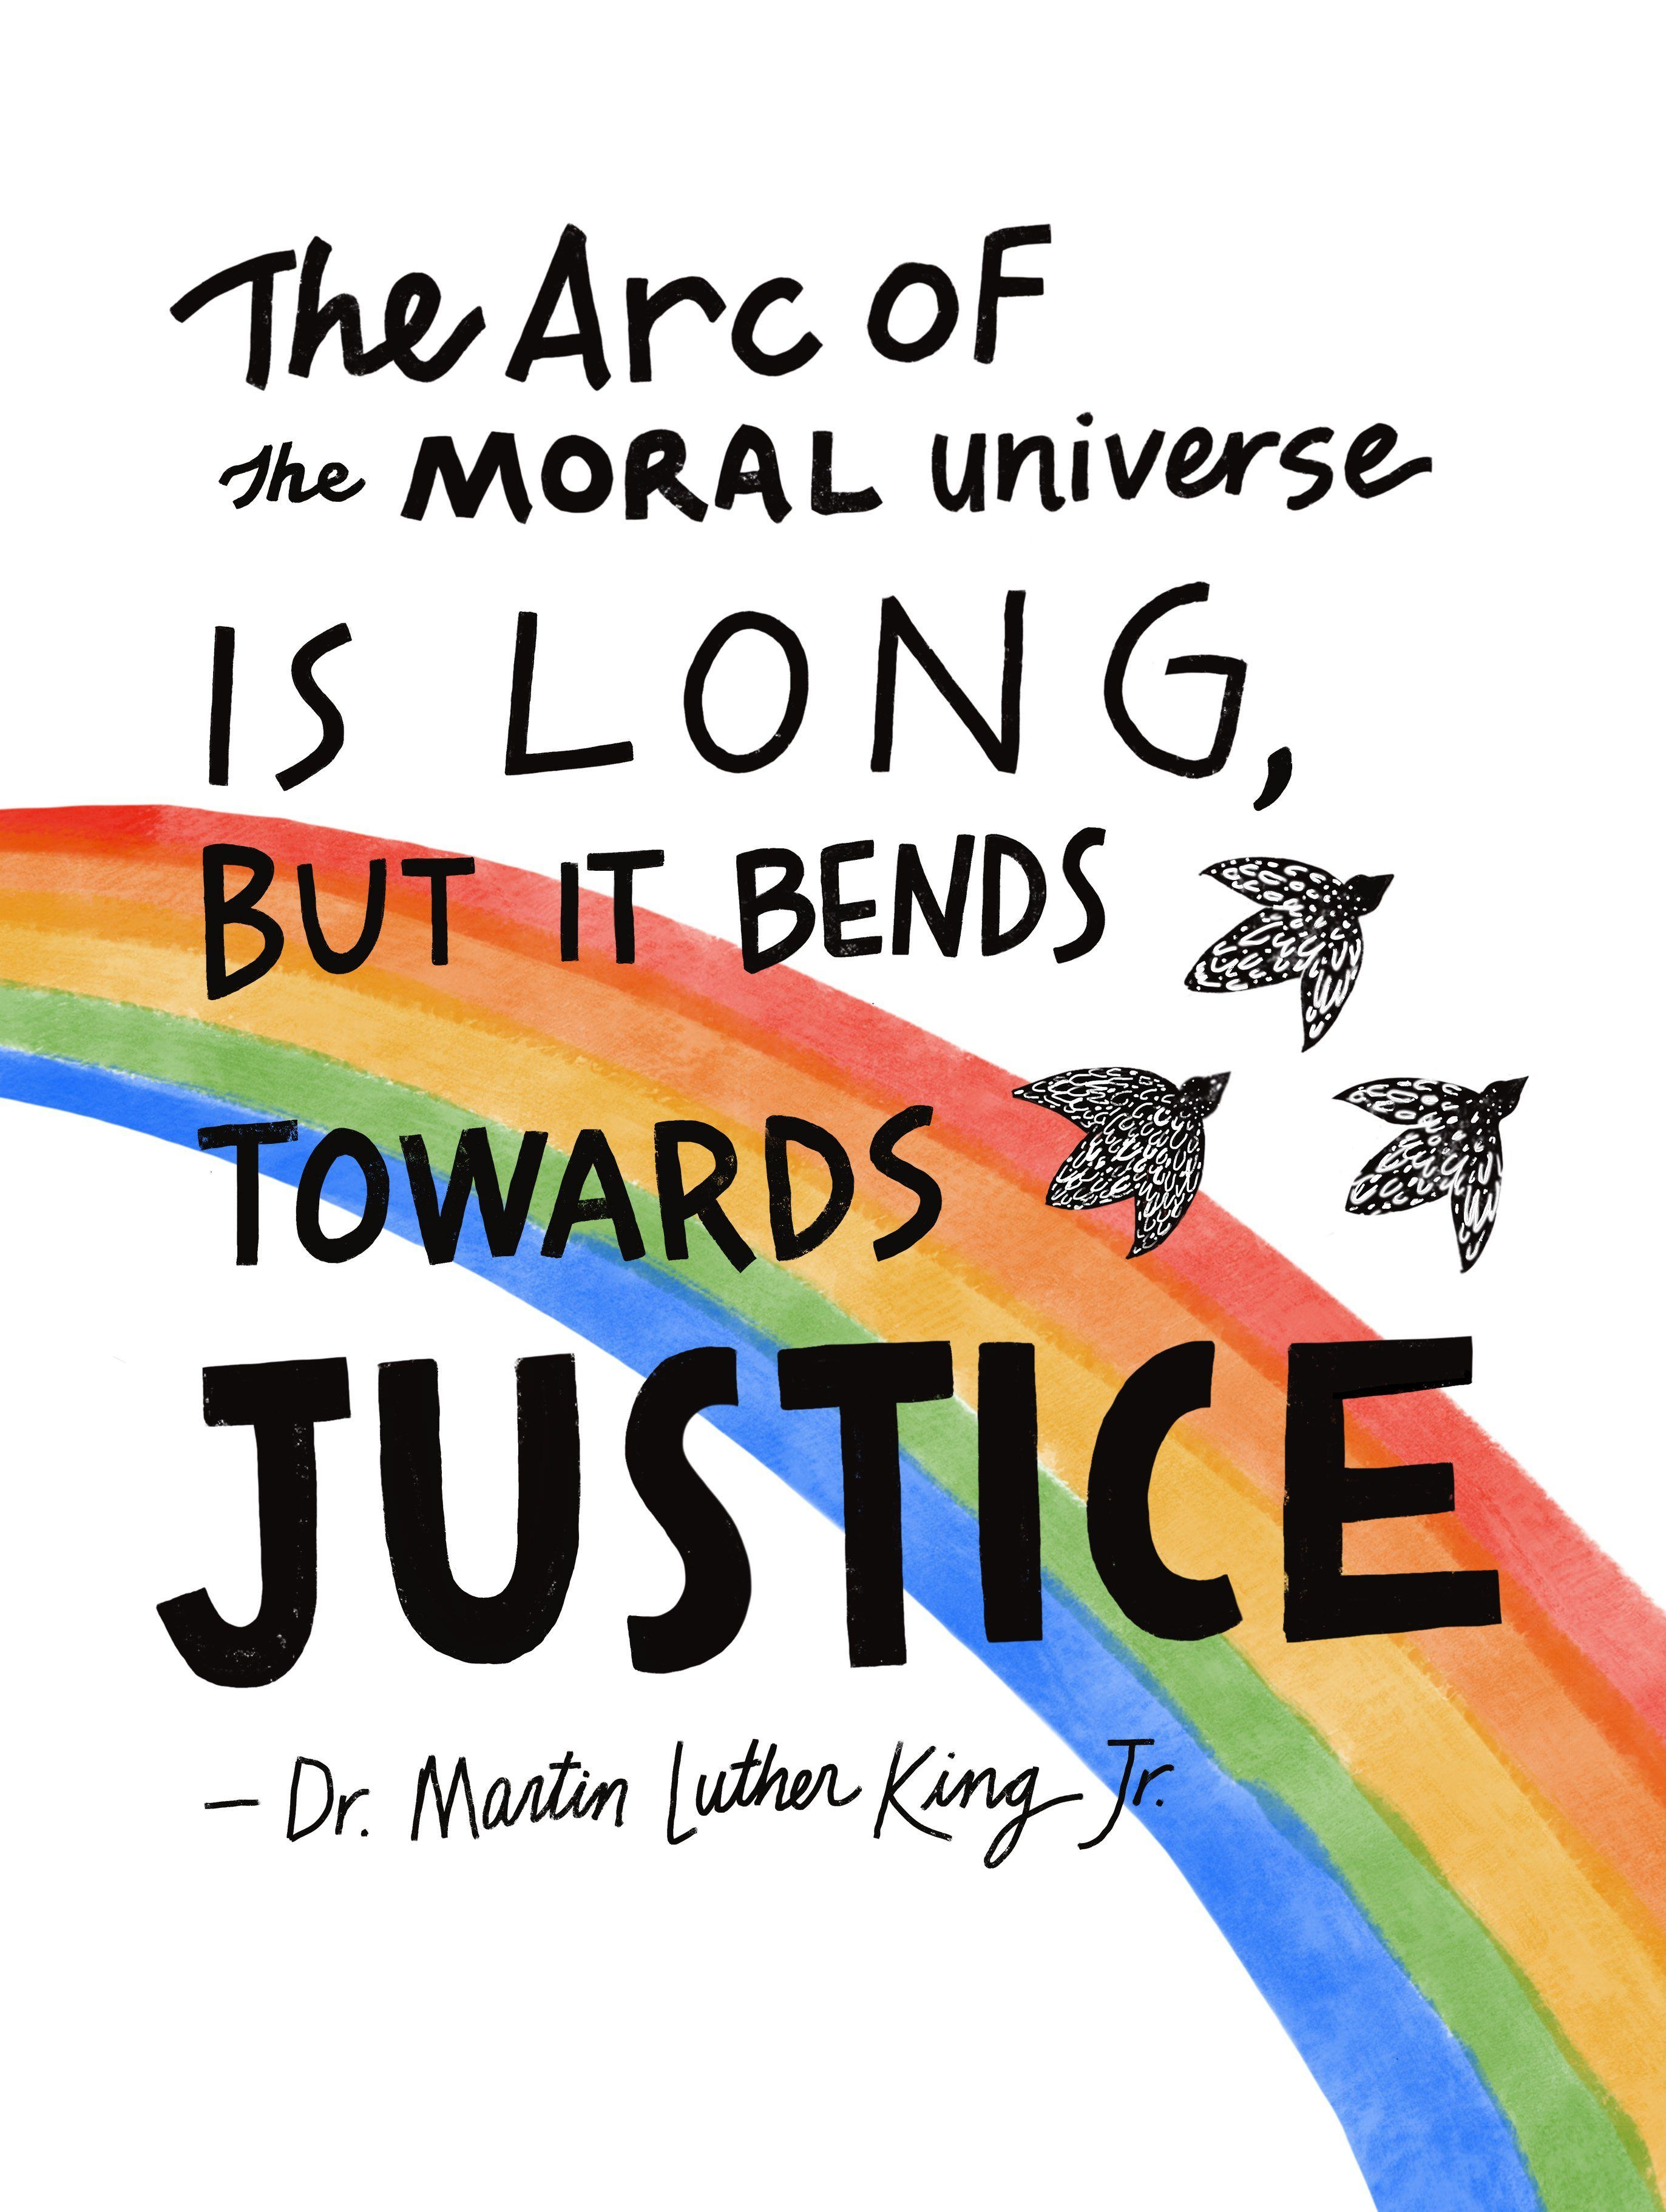 The Arc Of The Moral Universe Quote By Martin Luther King Jr Watercolor Art Print In 2021 Social Justice Quotes Justice Quotes Universe Quotes